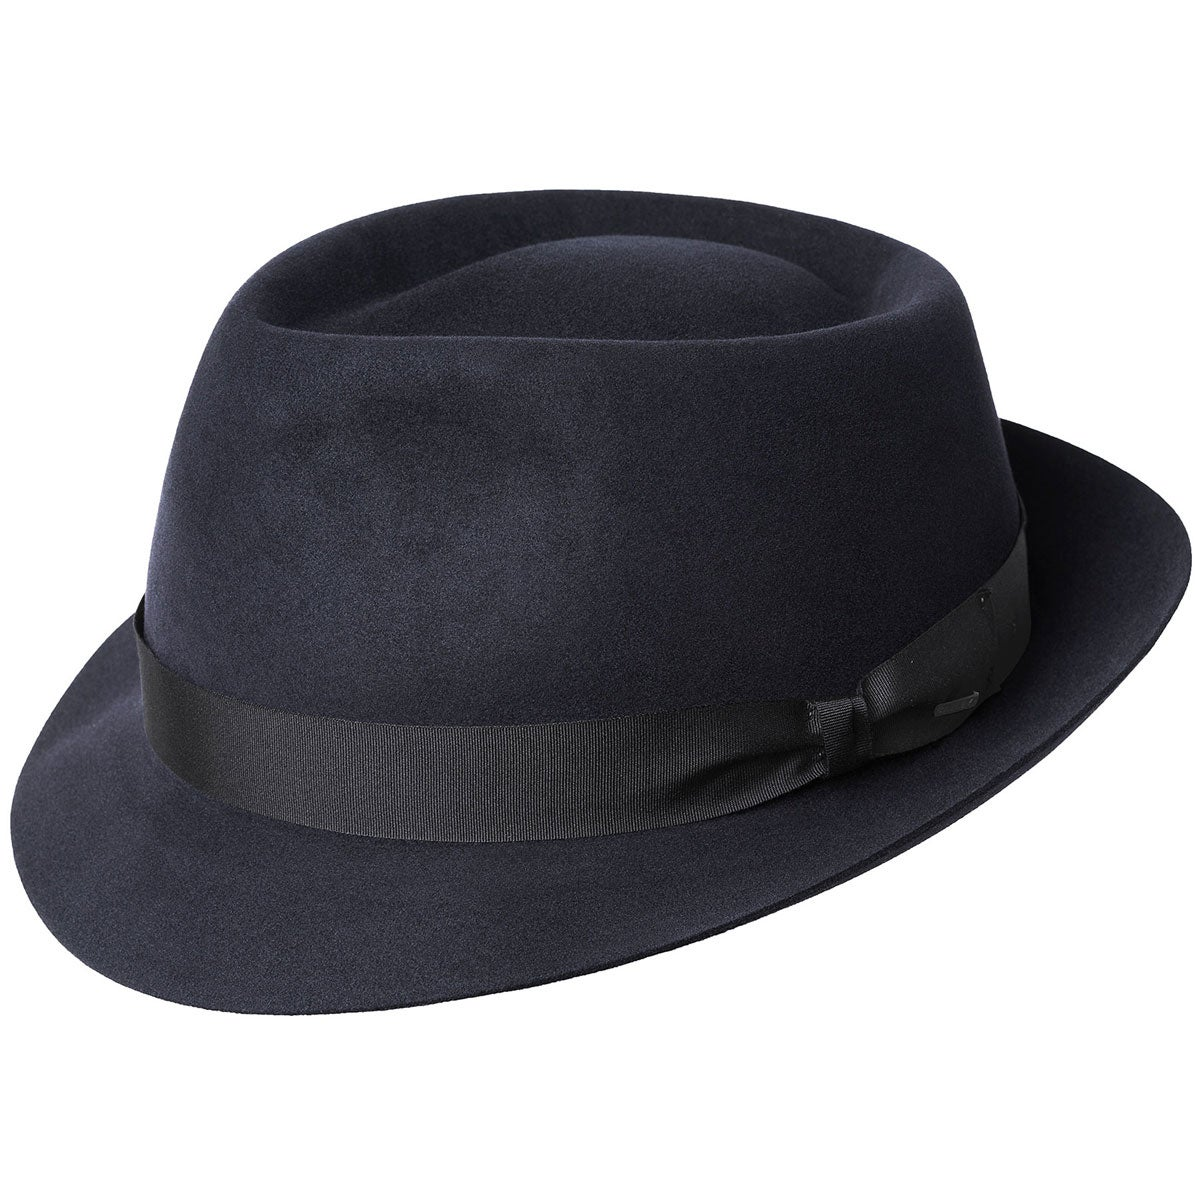 1960s – 70s Style Men's Hats Duffy II Trilby $130.00 AT vintagedancer.com